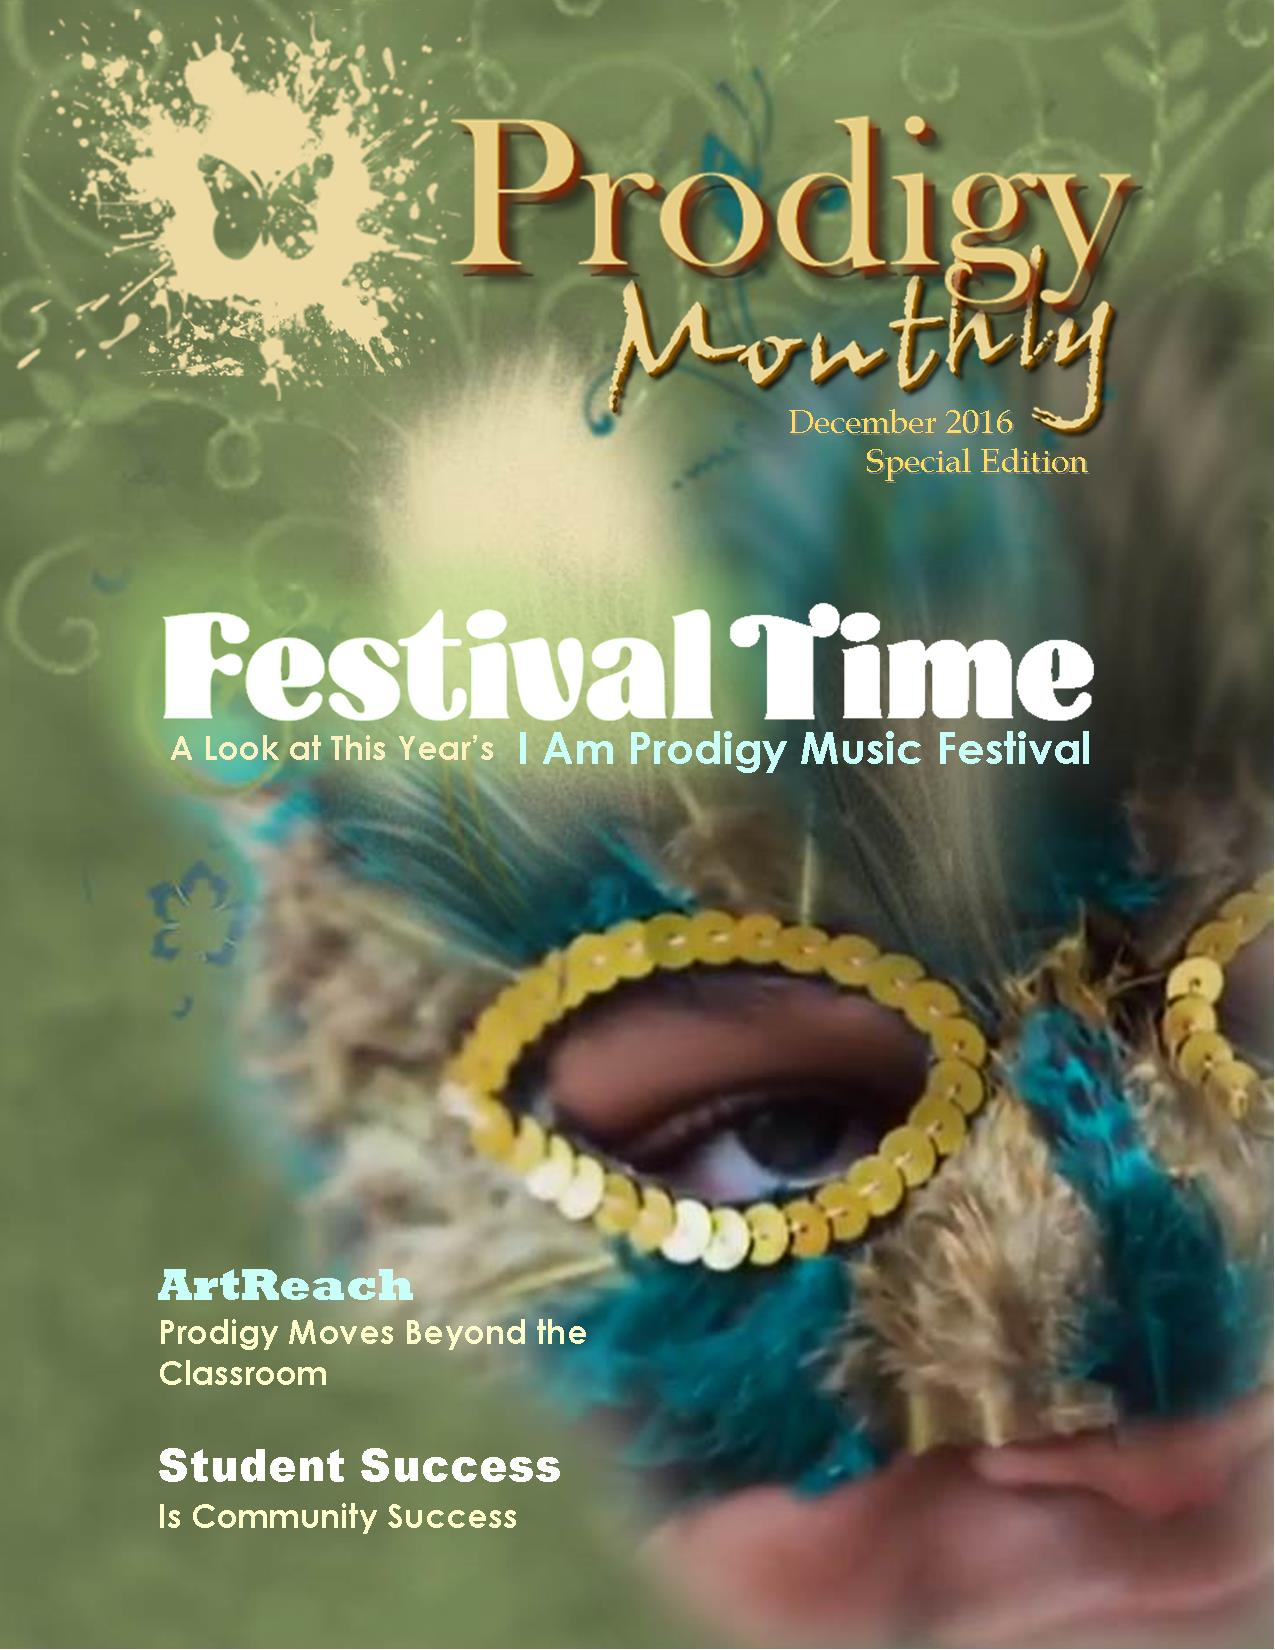 Prodigy Monthly Dec 2016 SE v2 cover